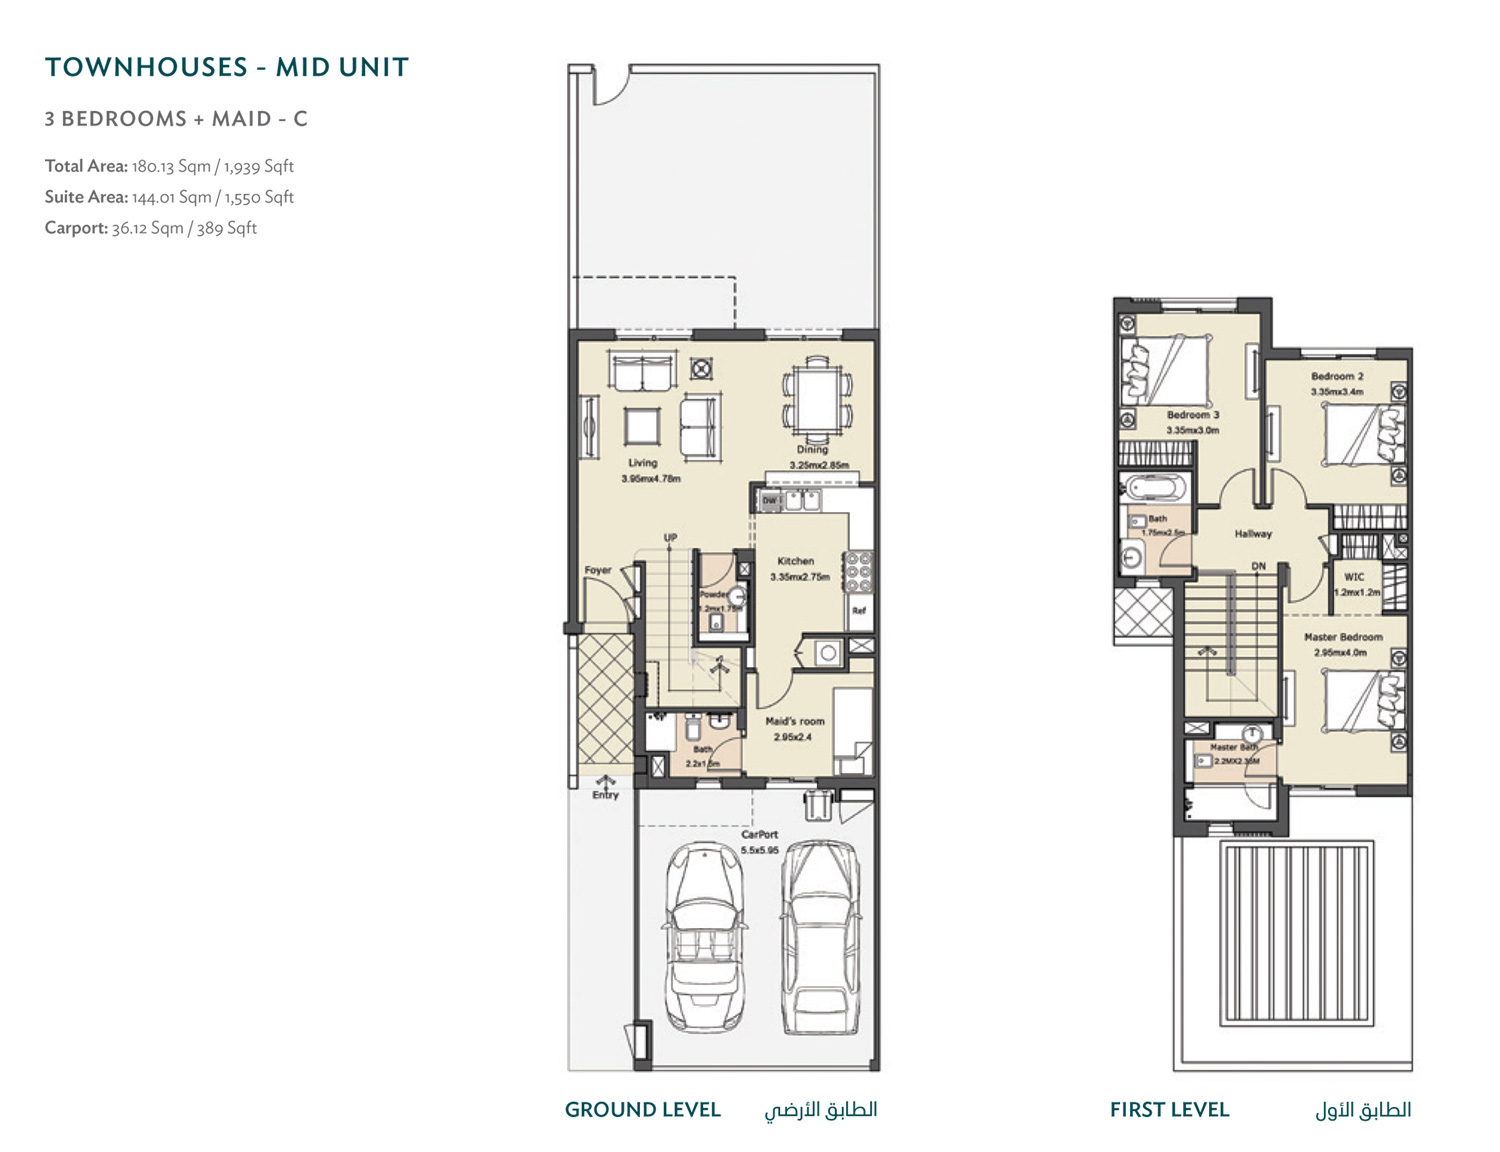 Phase 4 - 3 Bedroom - Maid - C, Size 1939 sqft